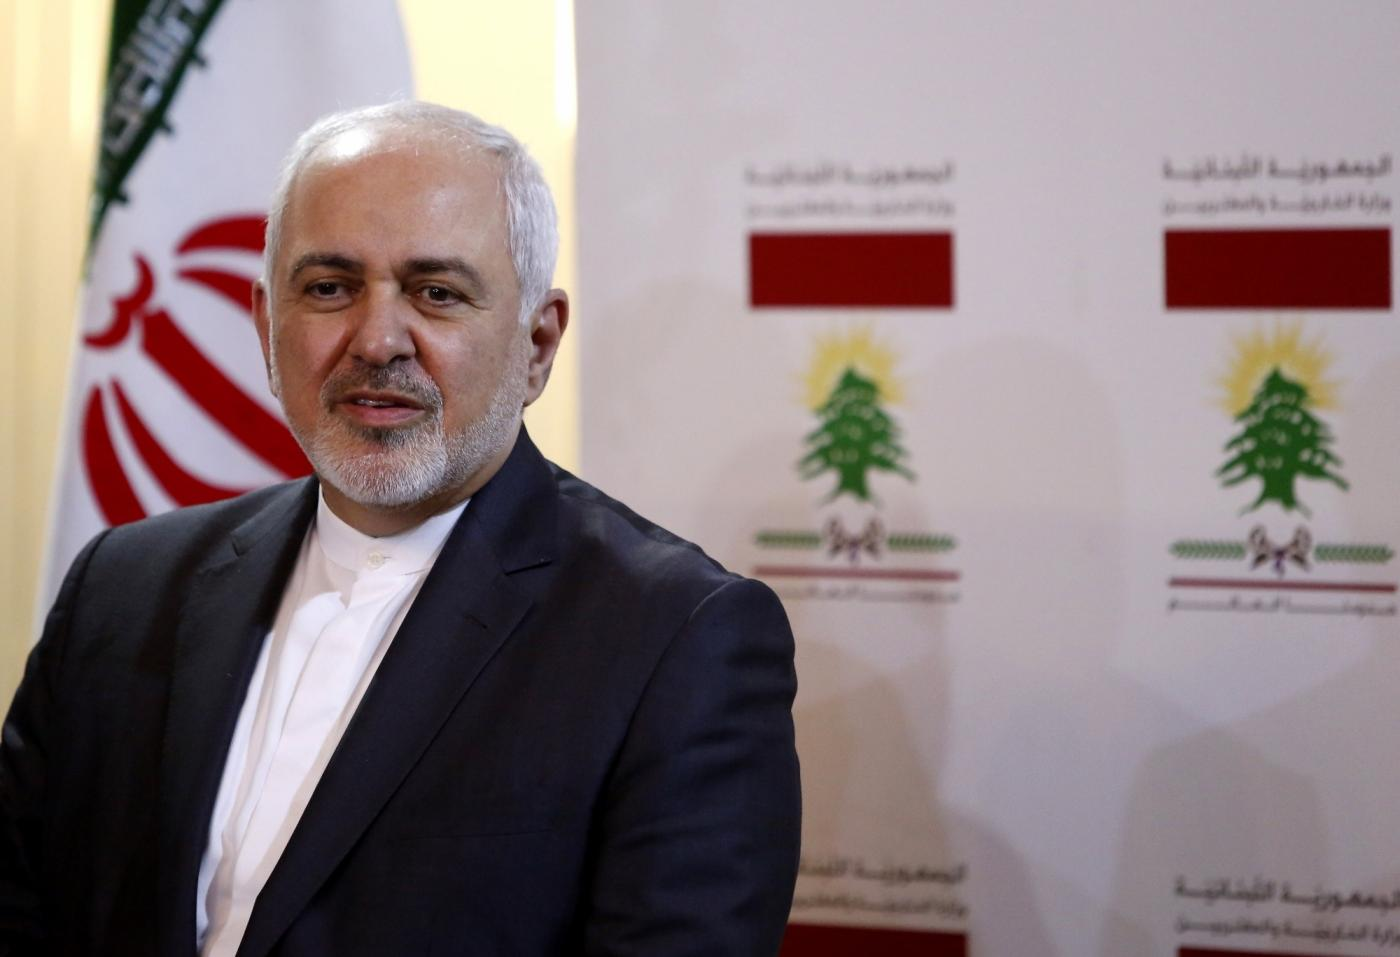 TEHRAN, Feb. 26, 2019 (Xinhua) -- Photo taken on Feb. 11, 2019 shows Iranian Foreign Minister Mohammad Javad Zarif attending a press conference in Beirut, Lebanon. Mohammad Javad Zarif seemed to have announced resignation on Feb. 25, 2018 through social media.